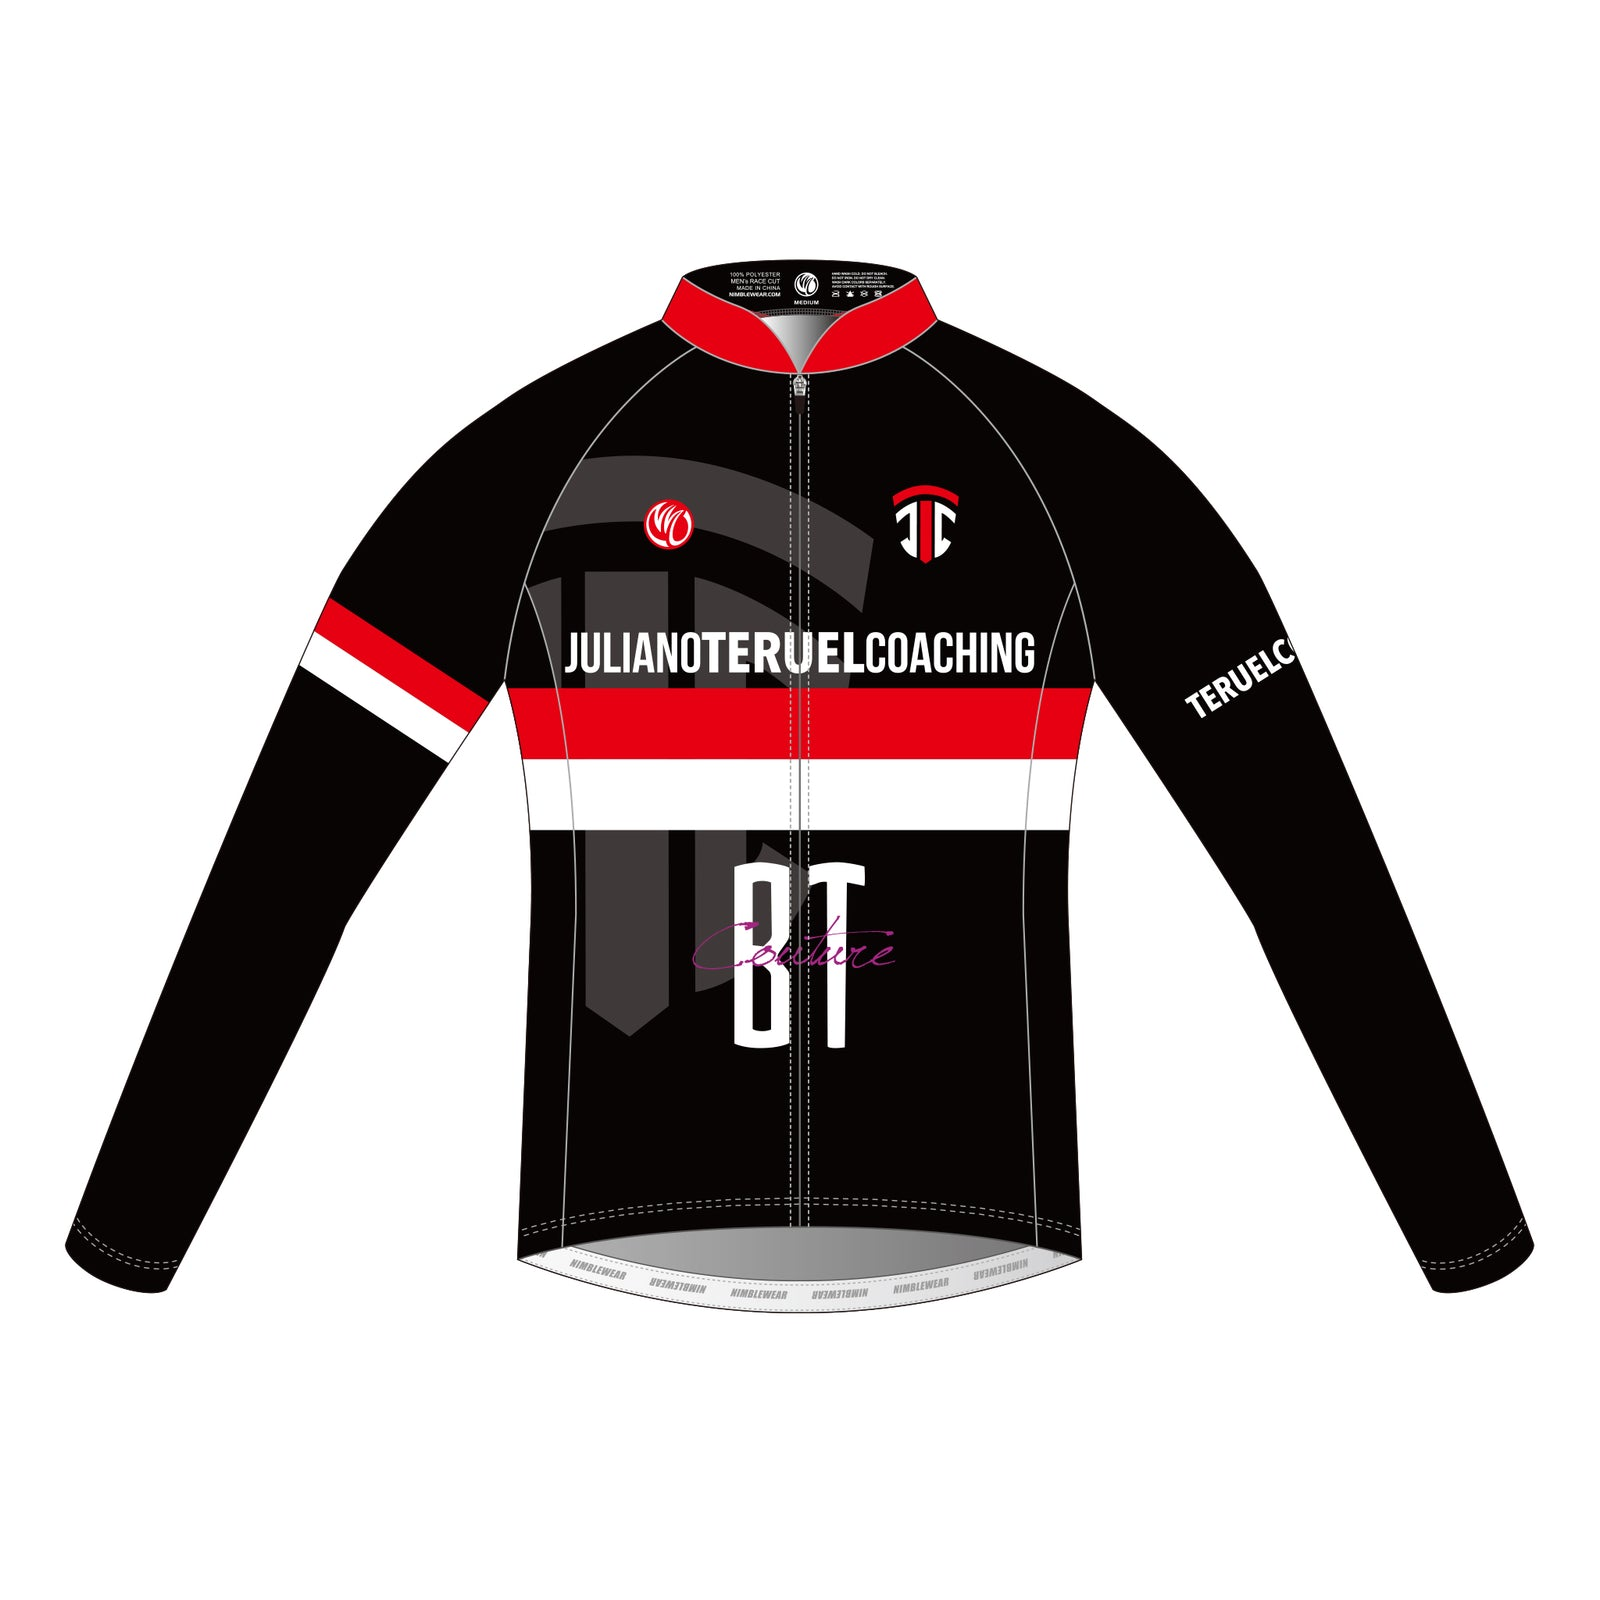 Juliano Teruel LS Cycling Jersey